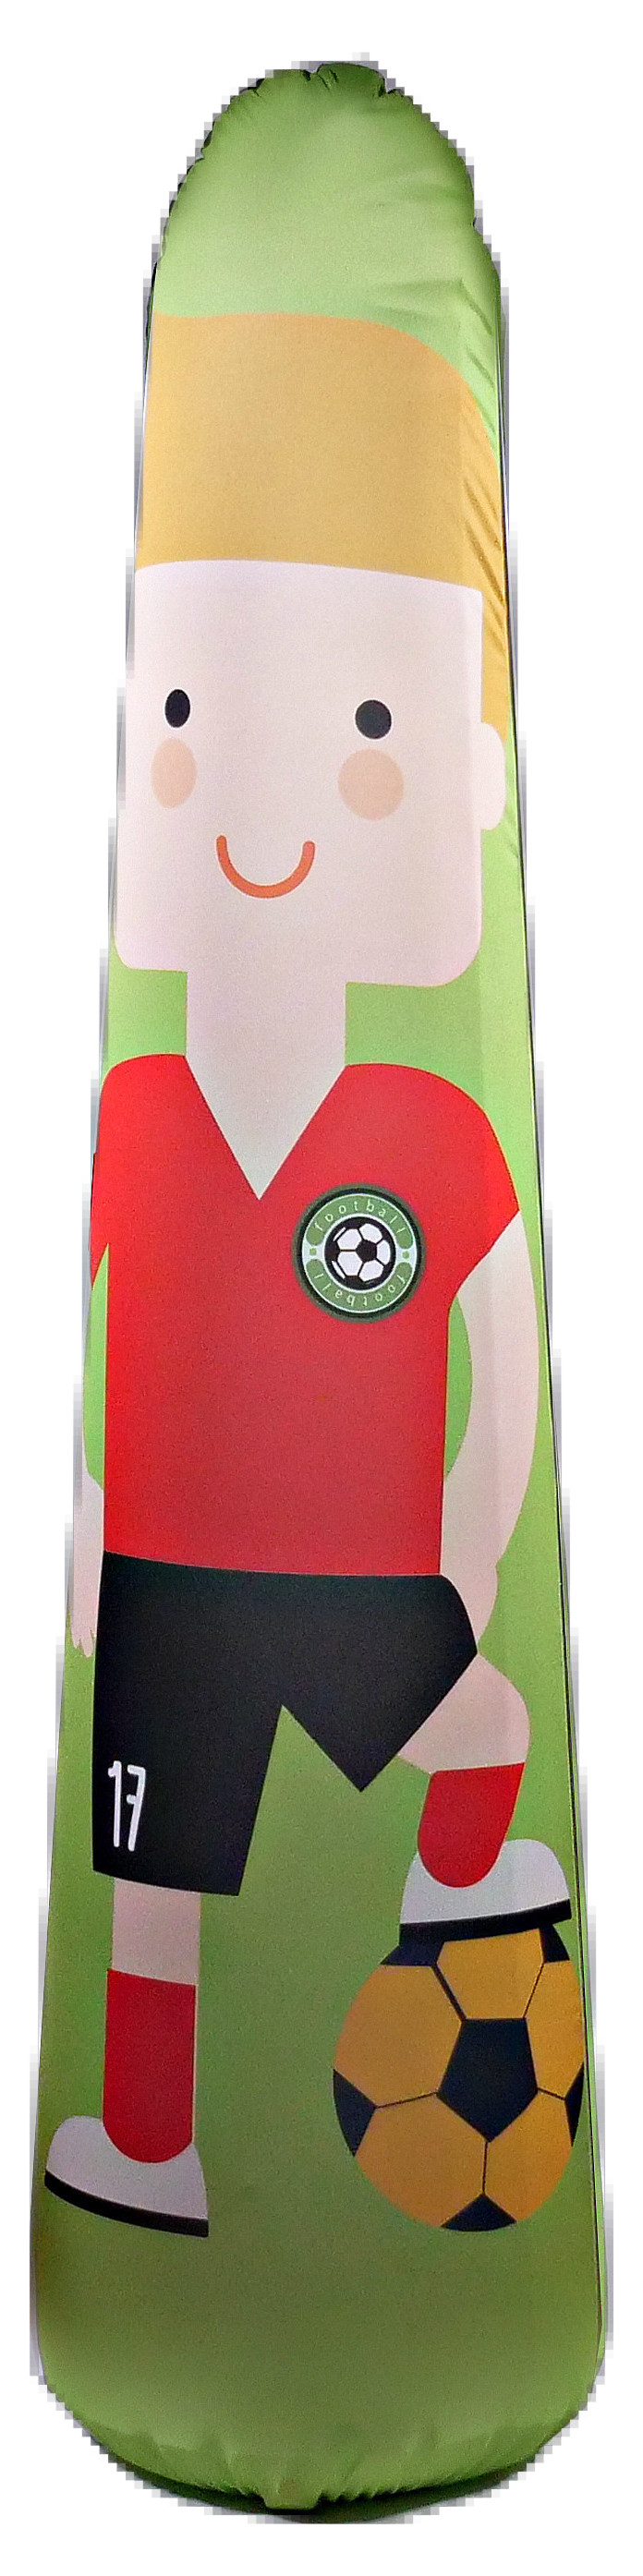 Kids Soccer Training Aid Free-Kick 5FT Inflatable + Machine Washable Fabric Cover by Bonk Fit by Pueri Elemental